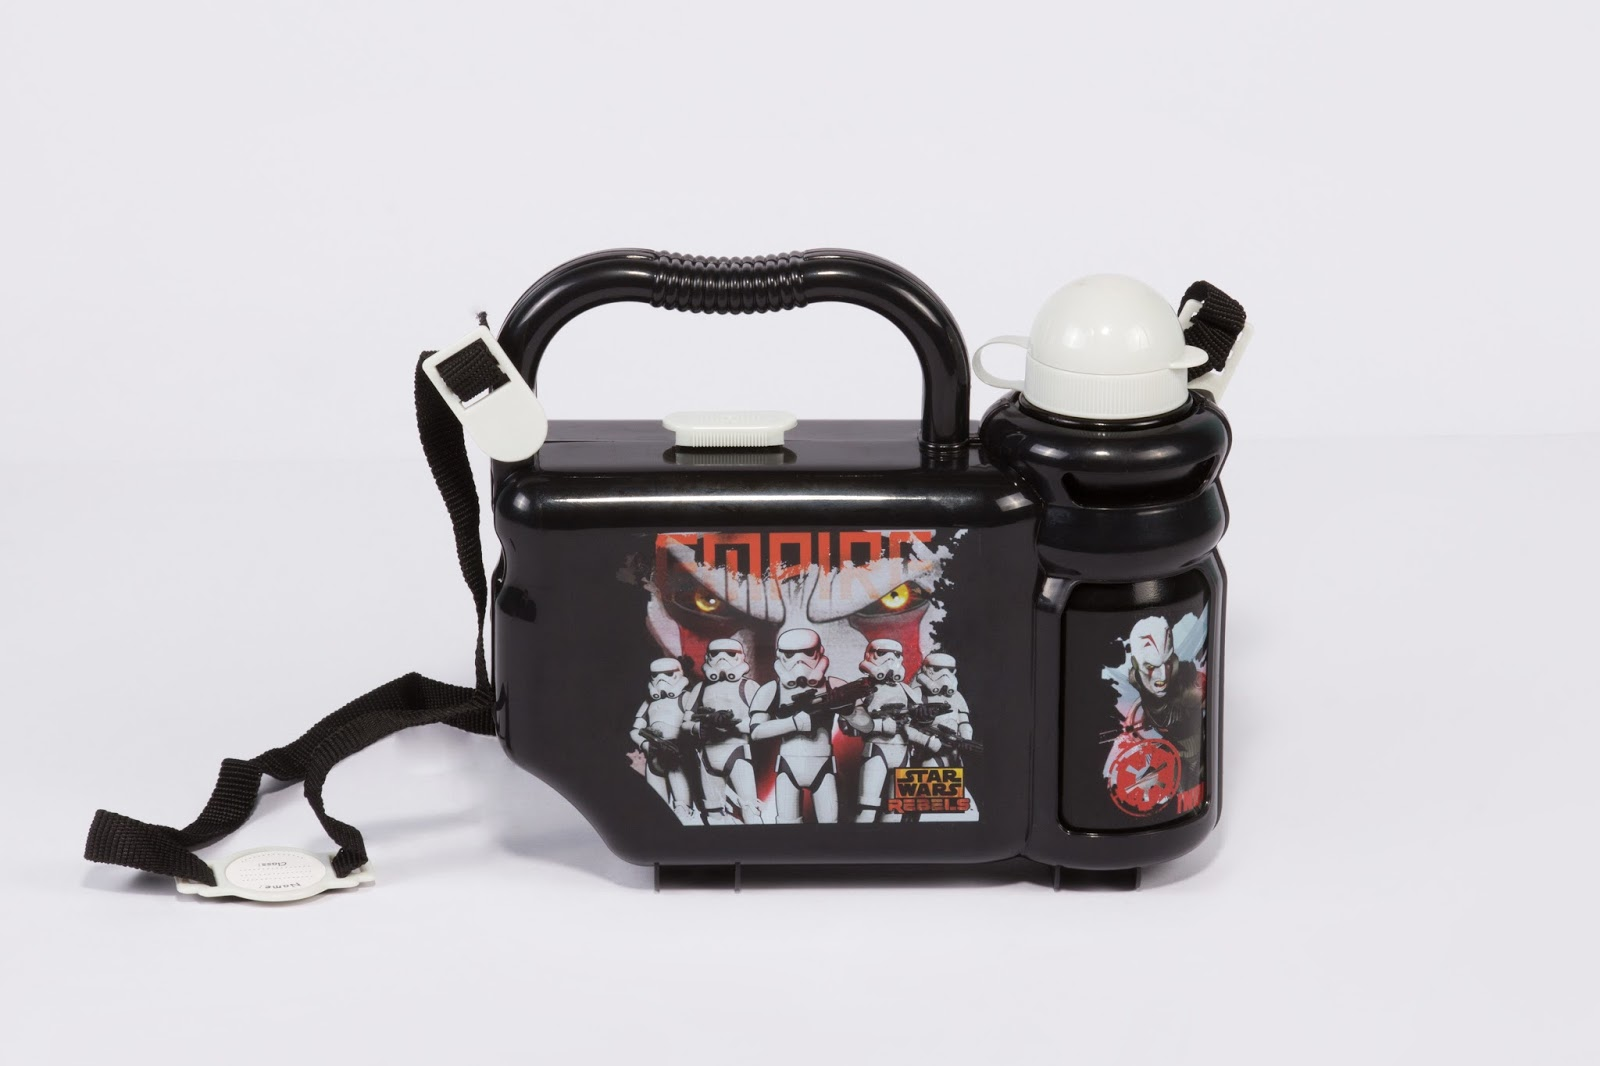 6f4b72865338b For your little boys who can't get enough of Star Wars, get them these Star  Wars themed lunch kits!